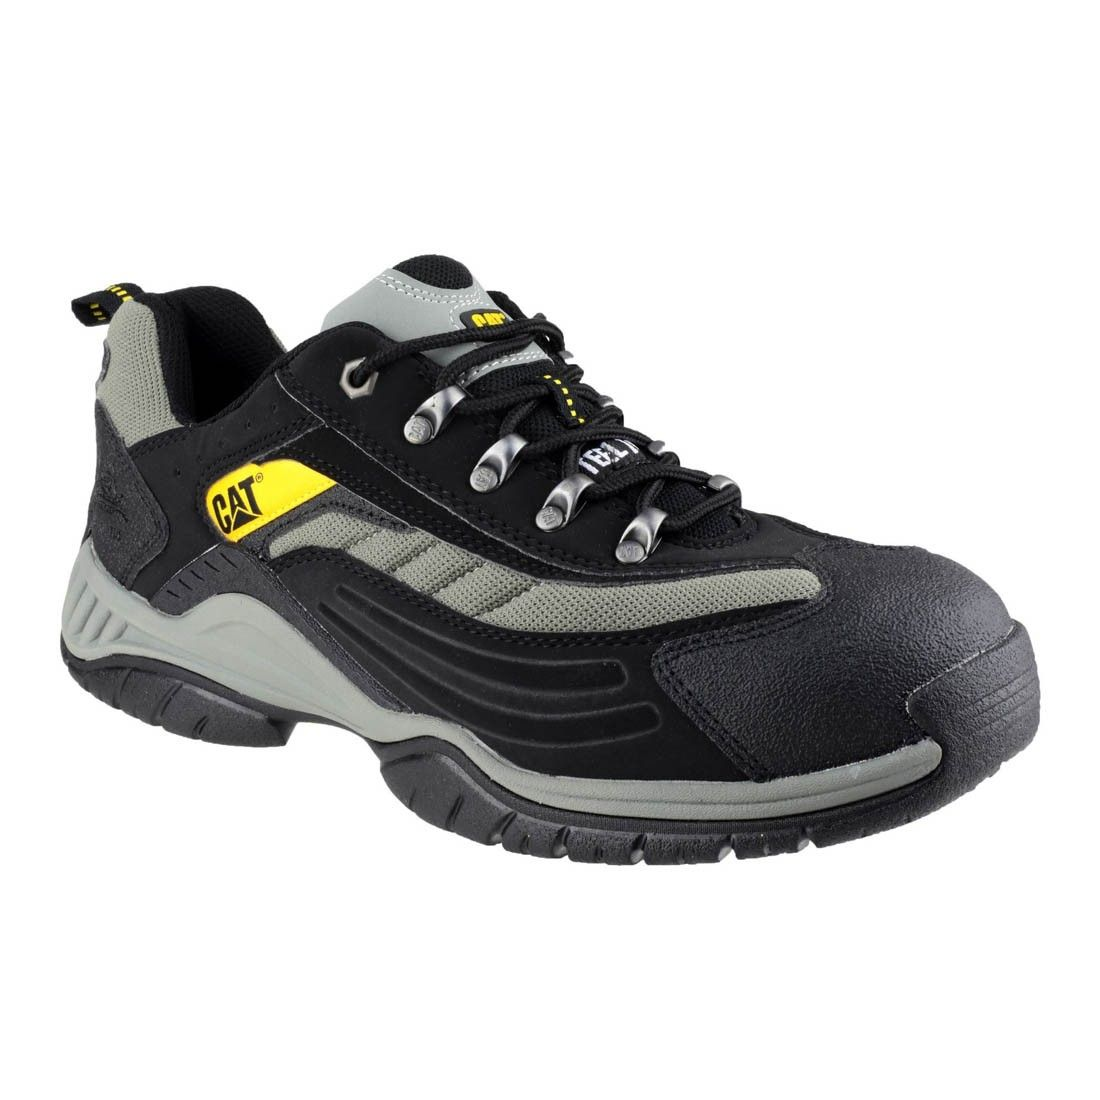 5e8eb325e40b Parade Jamma Black Premium Unisex Safety Trainers with VPS Comfort System